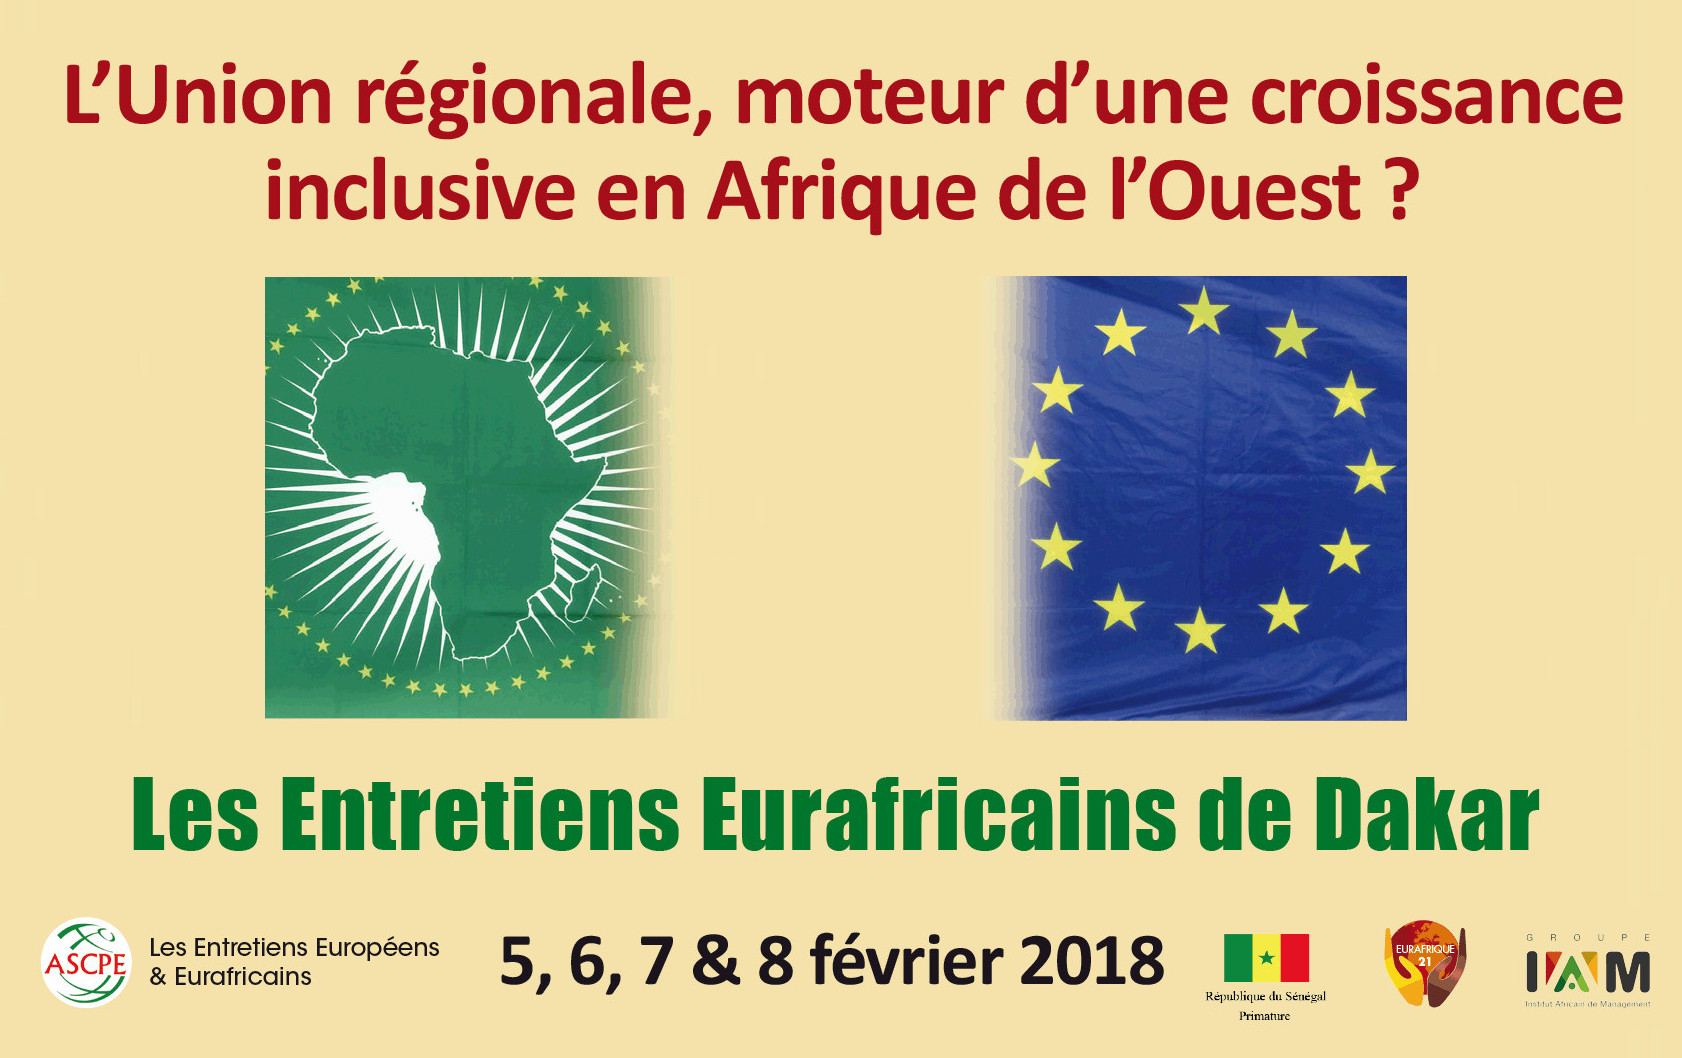 Report on the National Union of Engineers Organizations of Senegal (UNISEN) at the Entretiens Eurafricains of Dakar